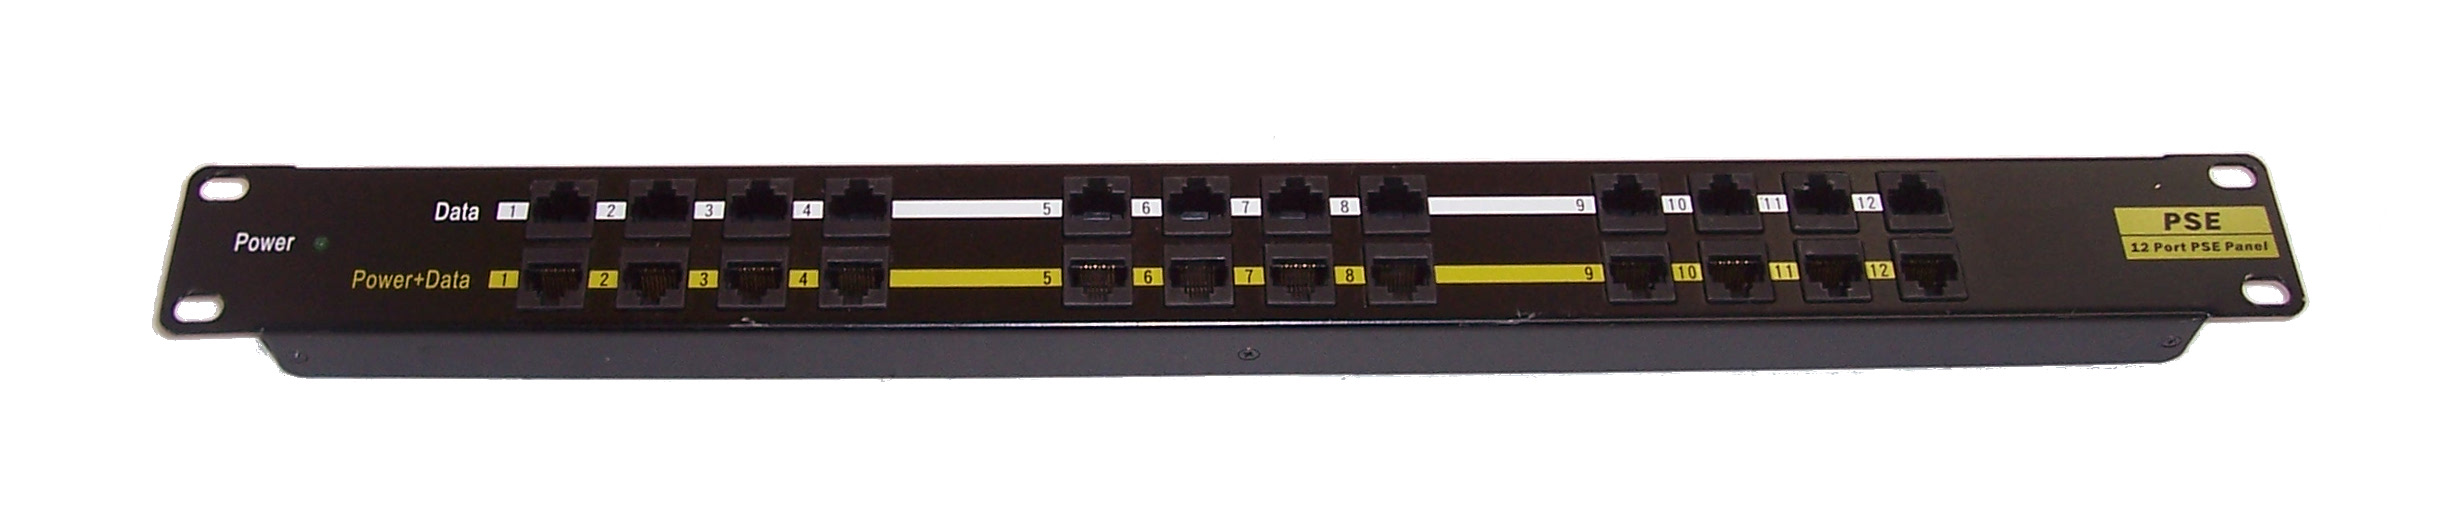 PANEL-12PORT-POE 12 PORT POE PANEL INJECTOR